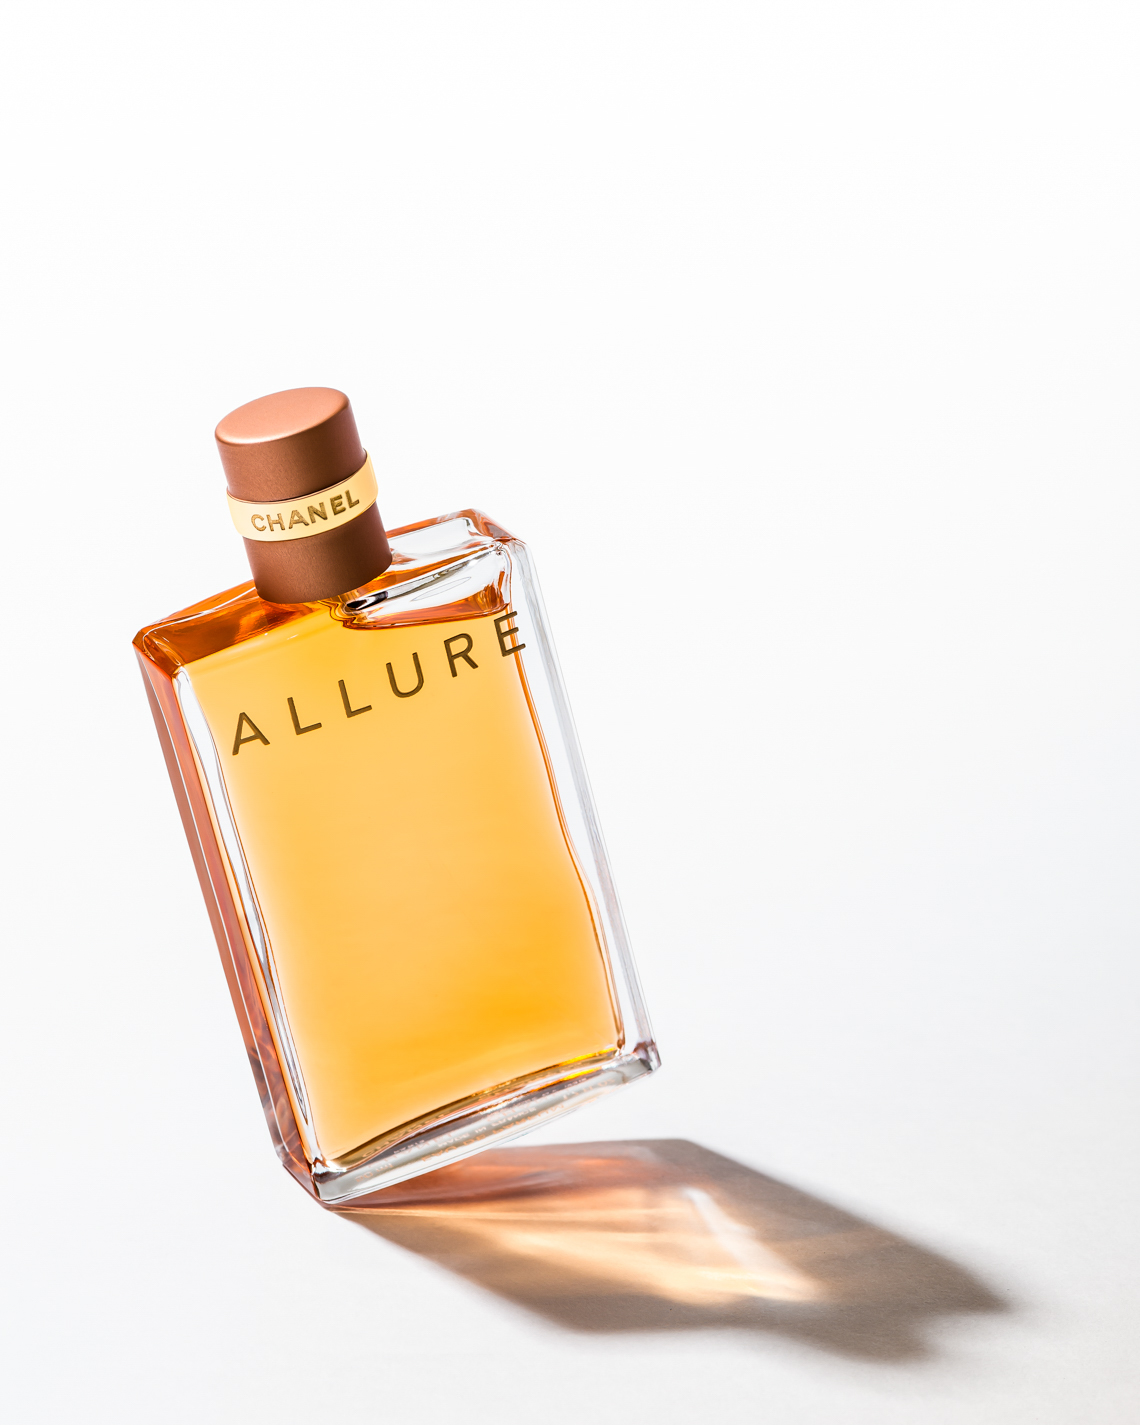 Fragrance Allure Chanel - Christophe Benard Photography - Edmonton Commercial Photographer, Edmonton Commercial Photography, Edmonton Product Photographer, Edmonton Product Photography, Still Life Photographer in Canada, Product Photographer in Canada